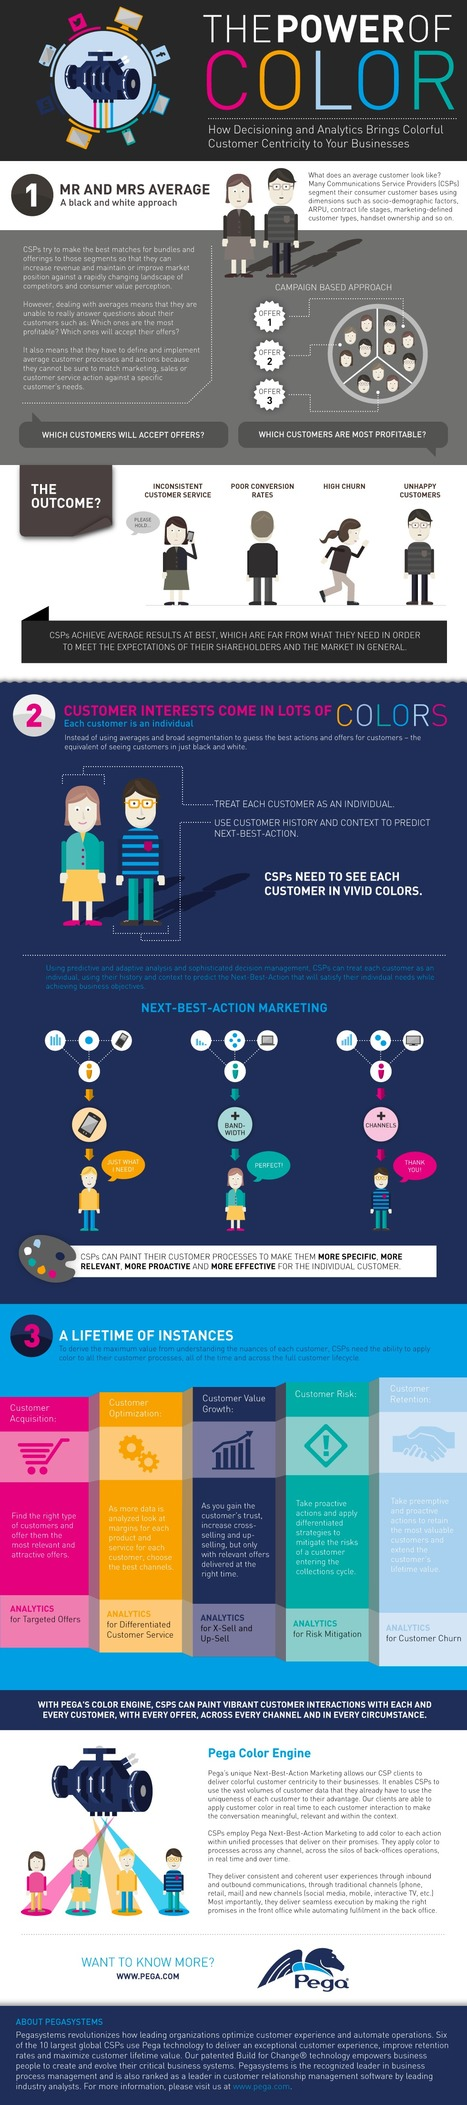 The Power of Color In Effective Customer Service [Infographic ] | New to Social Media | Scoop.it